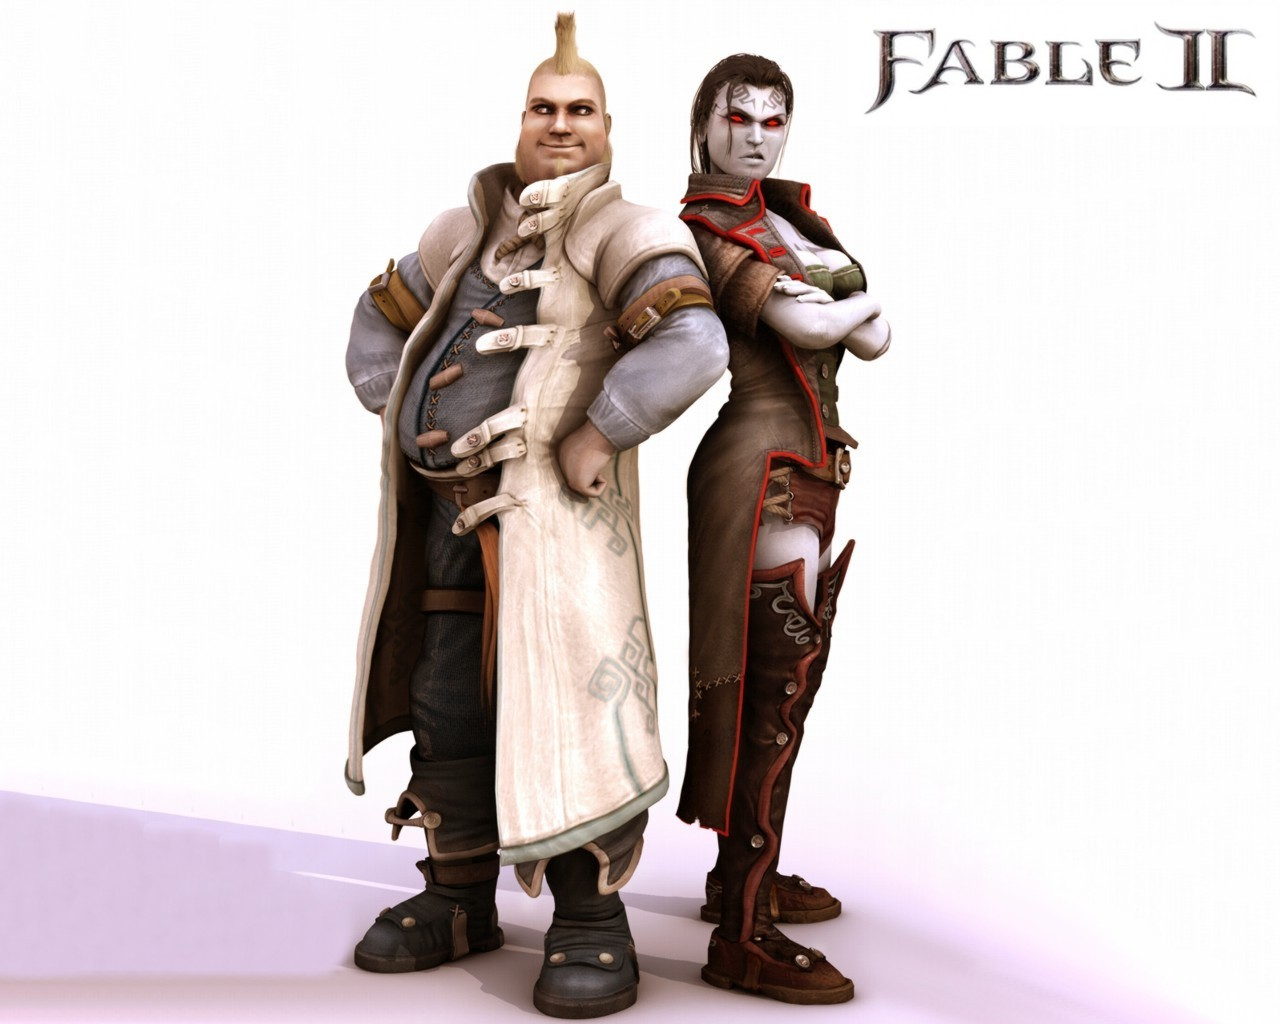 Fable 2 rose henti hentia tubes